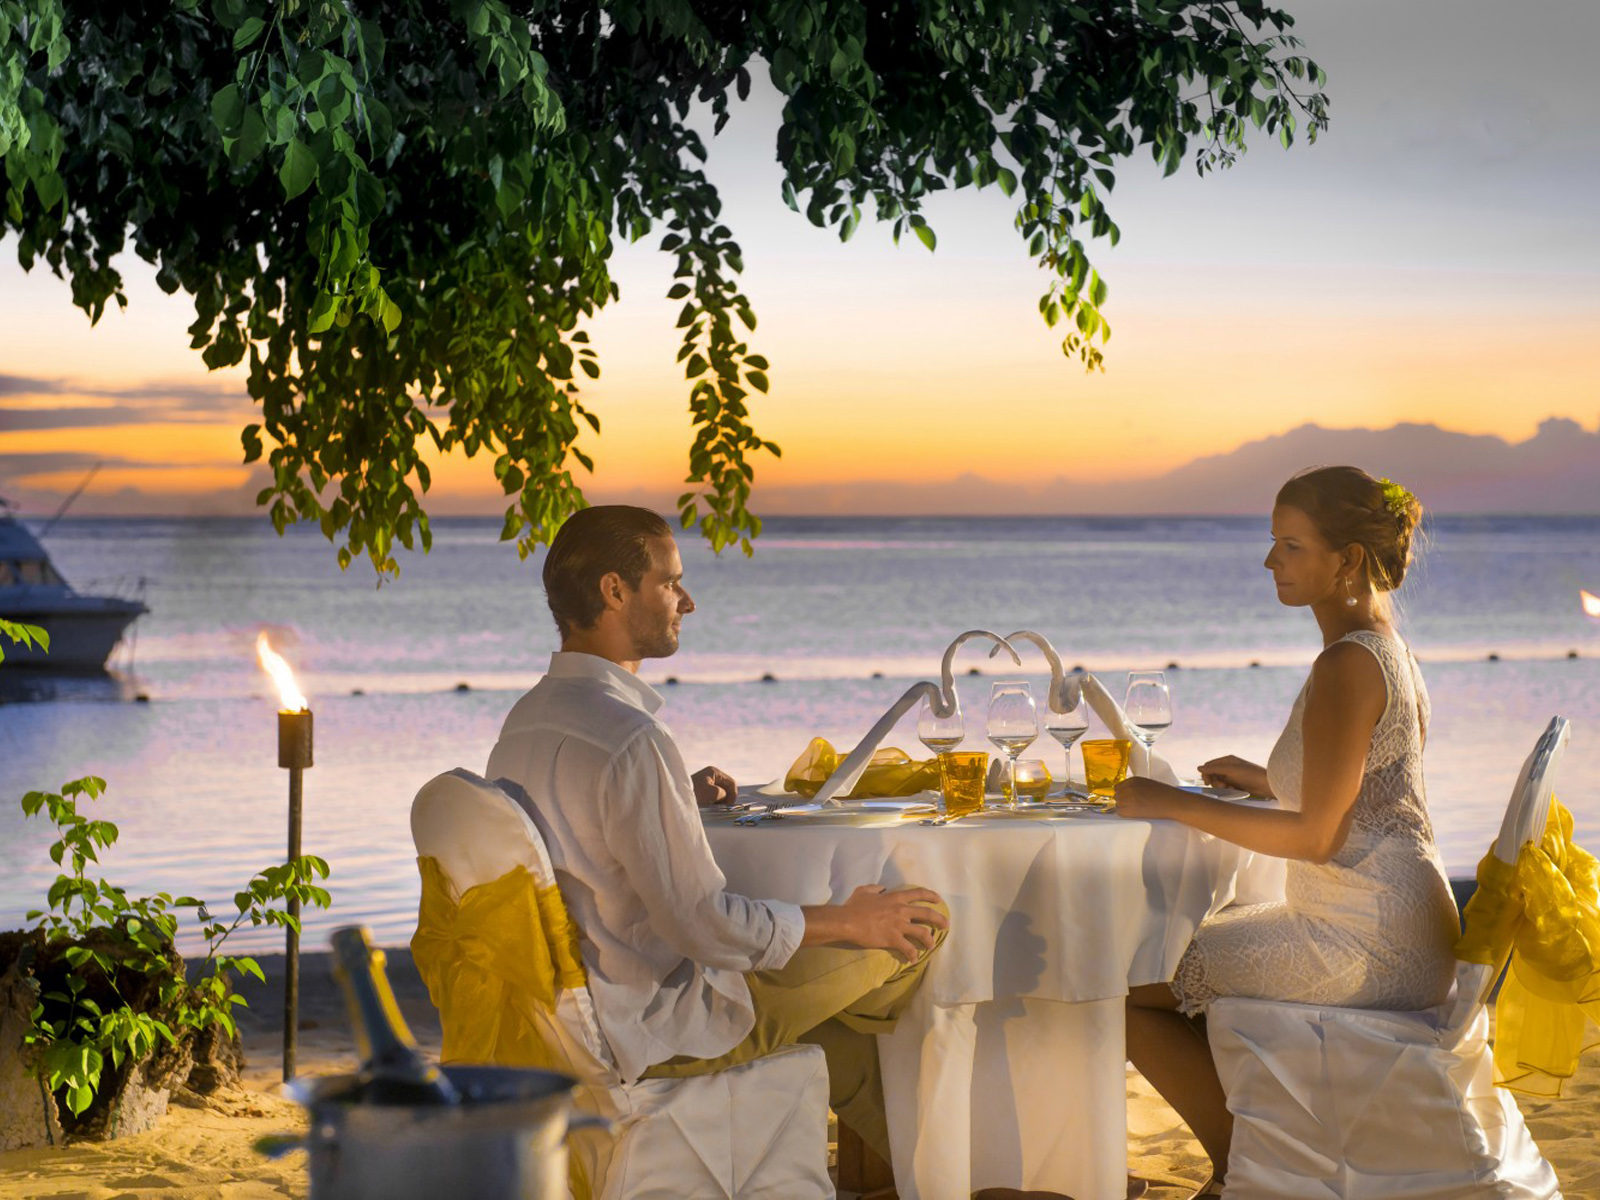 Cute Background Wallpaper Design Love Couple Romantic Dinner On The Beach Hd Love Wallpaper